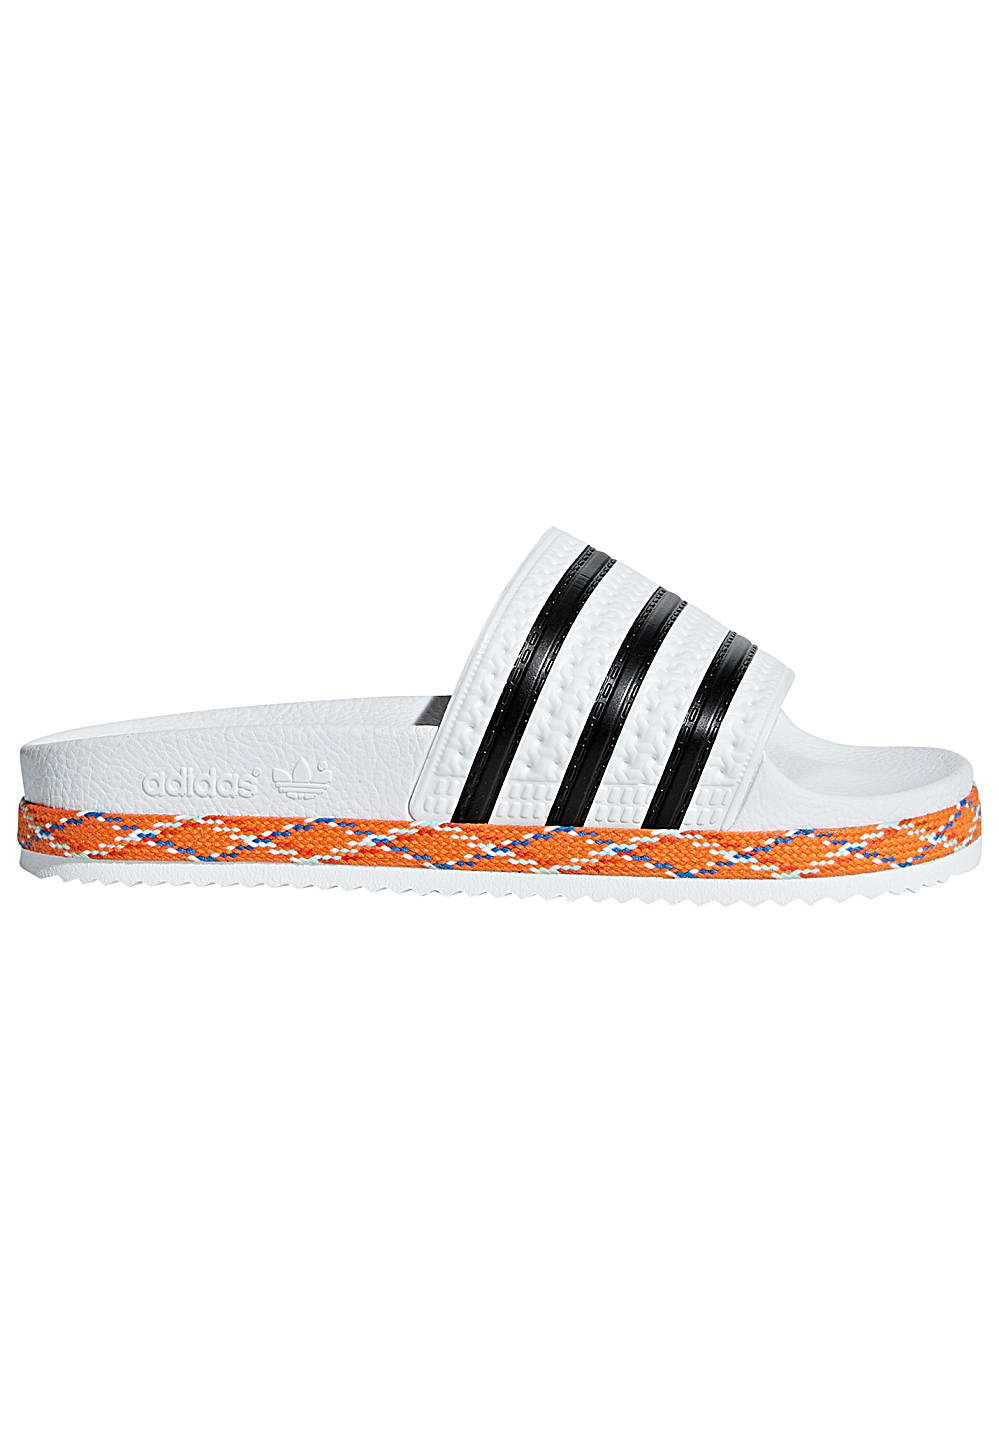 new concept 57f2f dcf58 Next. This product is currently out of stock. ADIDAS ORIGINALS. Adilette  New Bold - Sandals ...